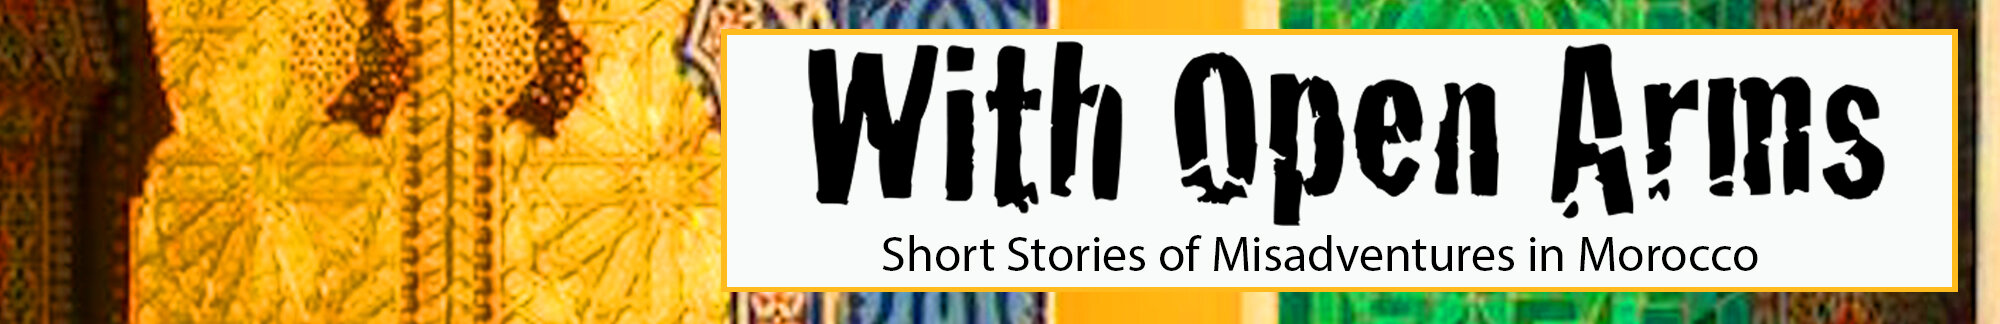 "Banner for author Matthew Félix's Amazon best-selling travel writing collection, ""With Open Arms: Short Stories of Misadventures in Morocco."""